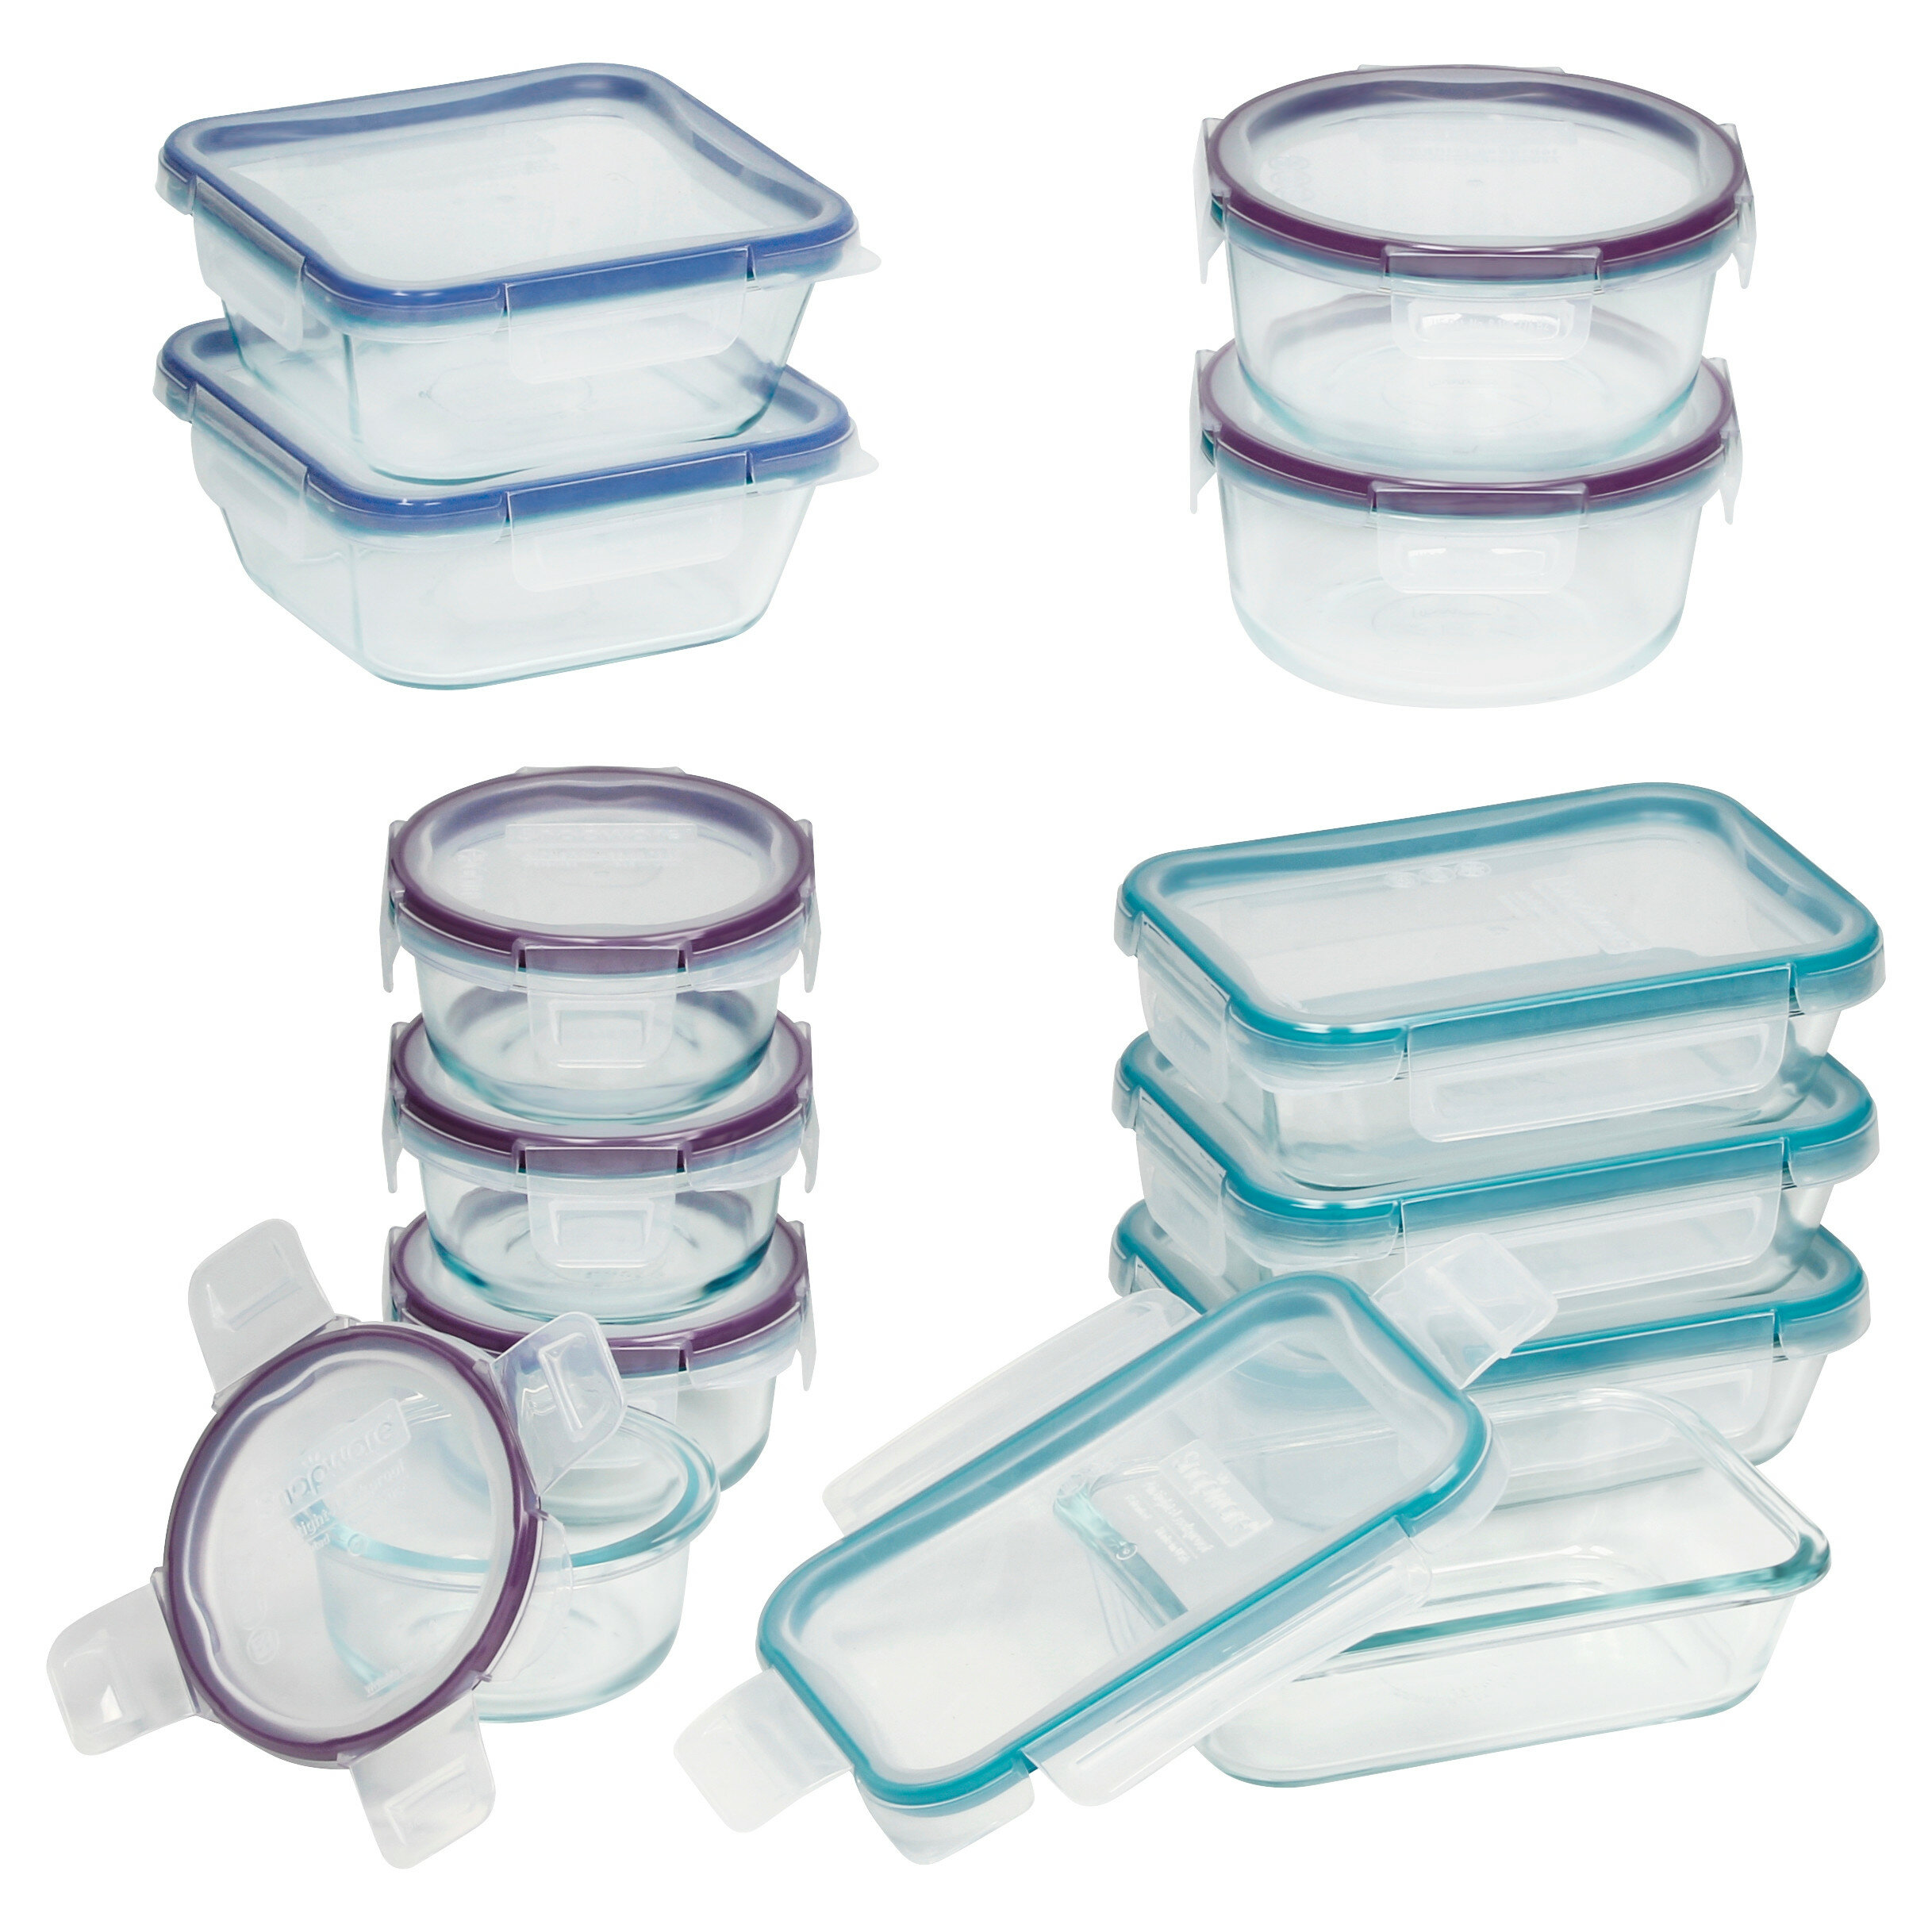 Snapware Snapware 12 Container Food Storage Set Reviews Wayfair